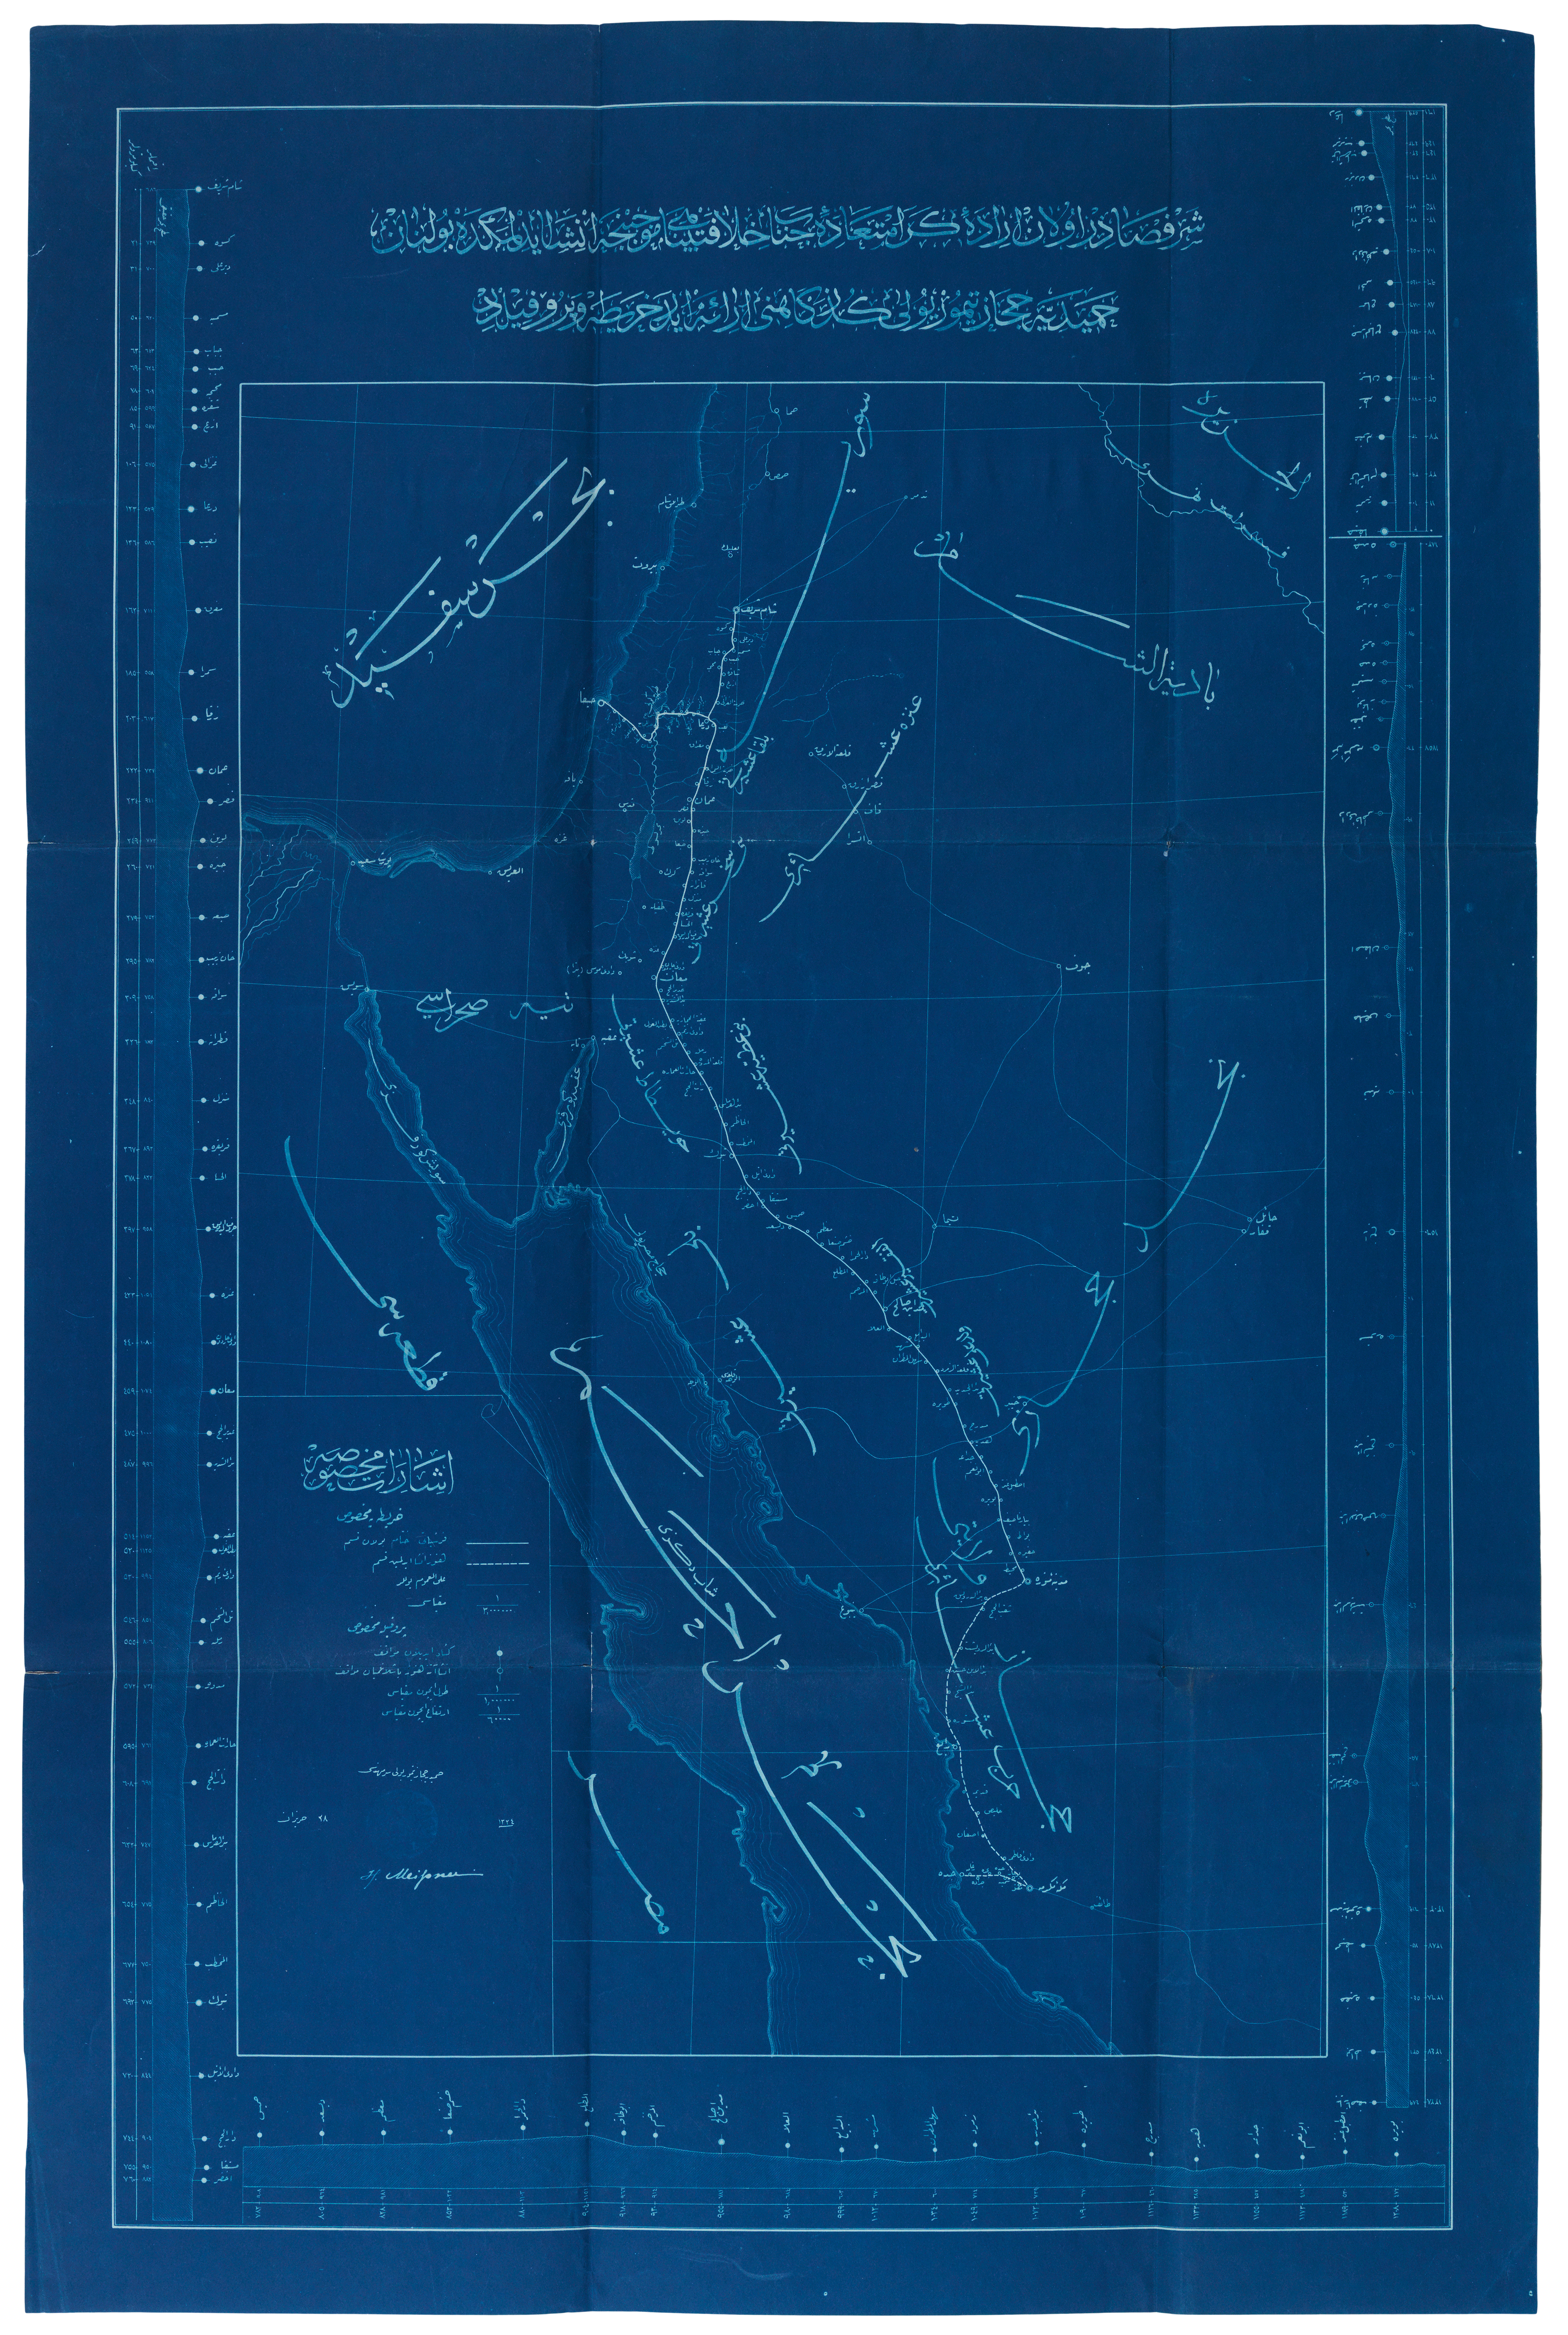 Blue-print map of the Hijaz railway line between Damascus and Medina, and Dar'a to Hayfa